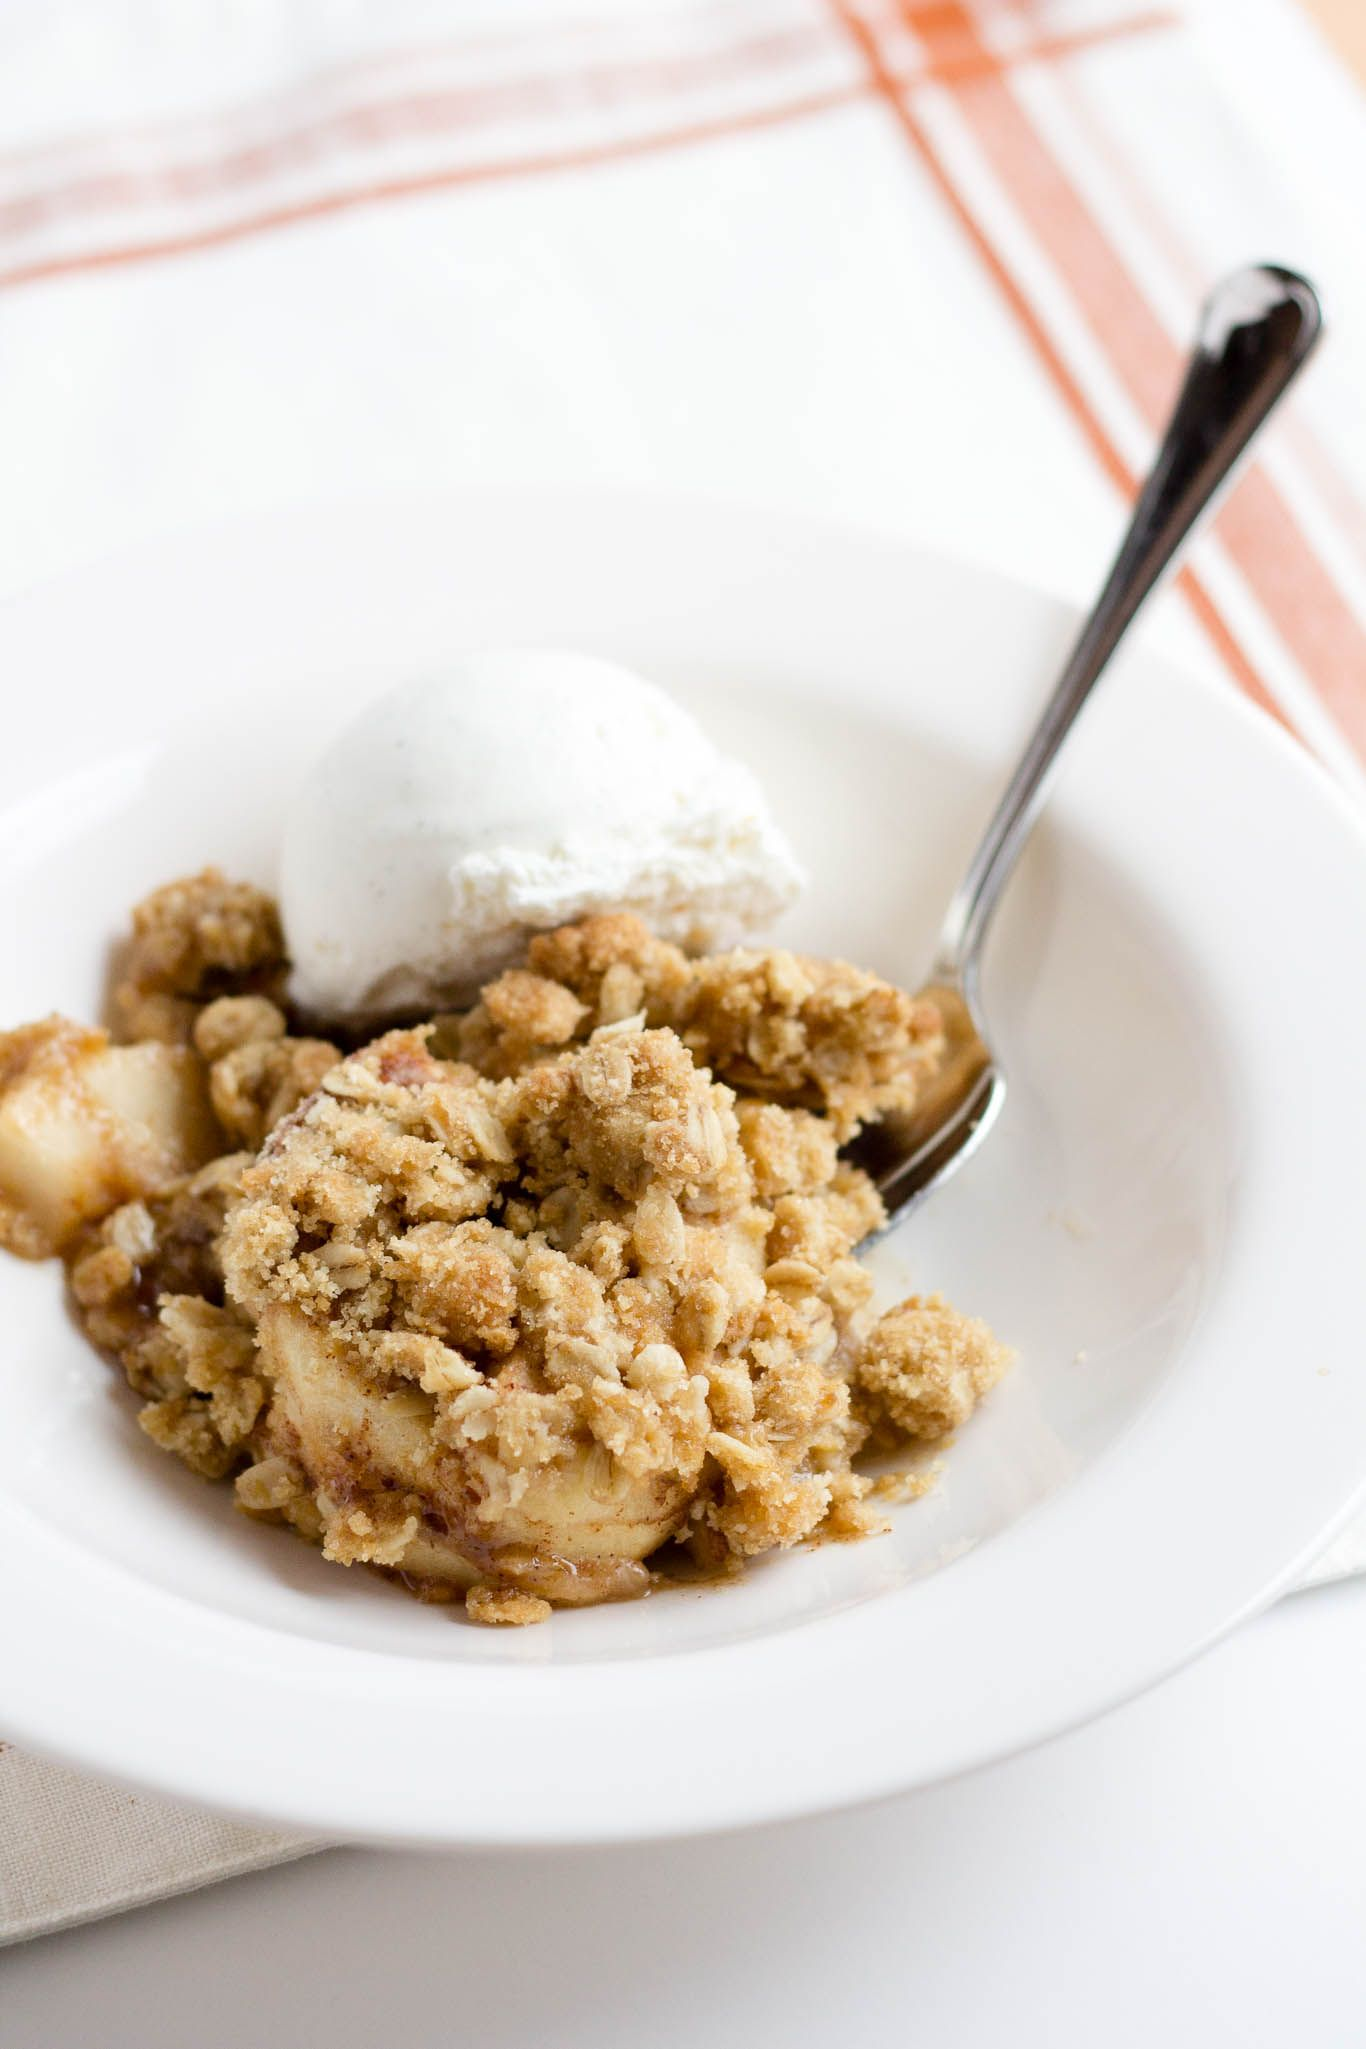 APPLE CRISP WITH OATMEAL CRUMB TOPPING